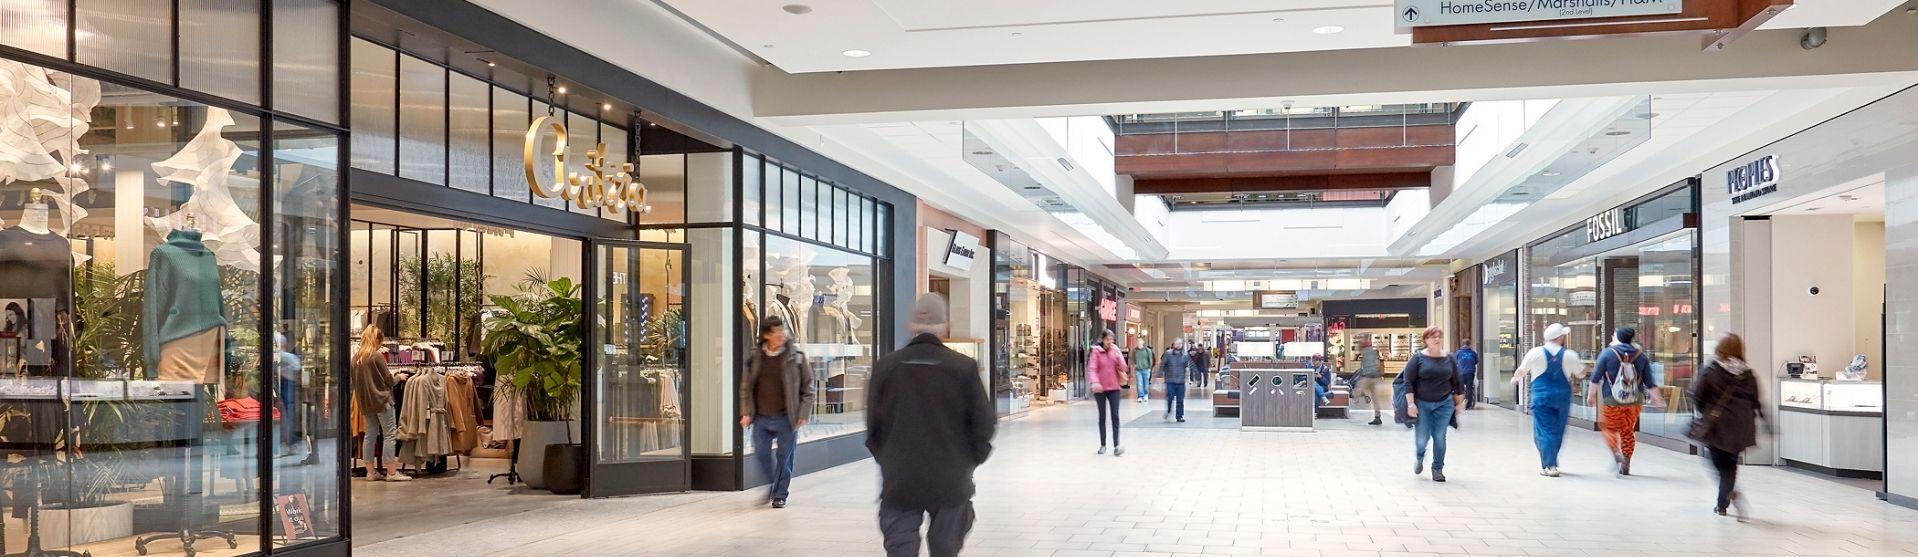 People walking through the centre